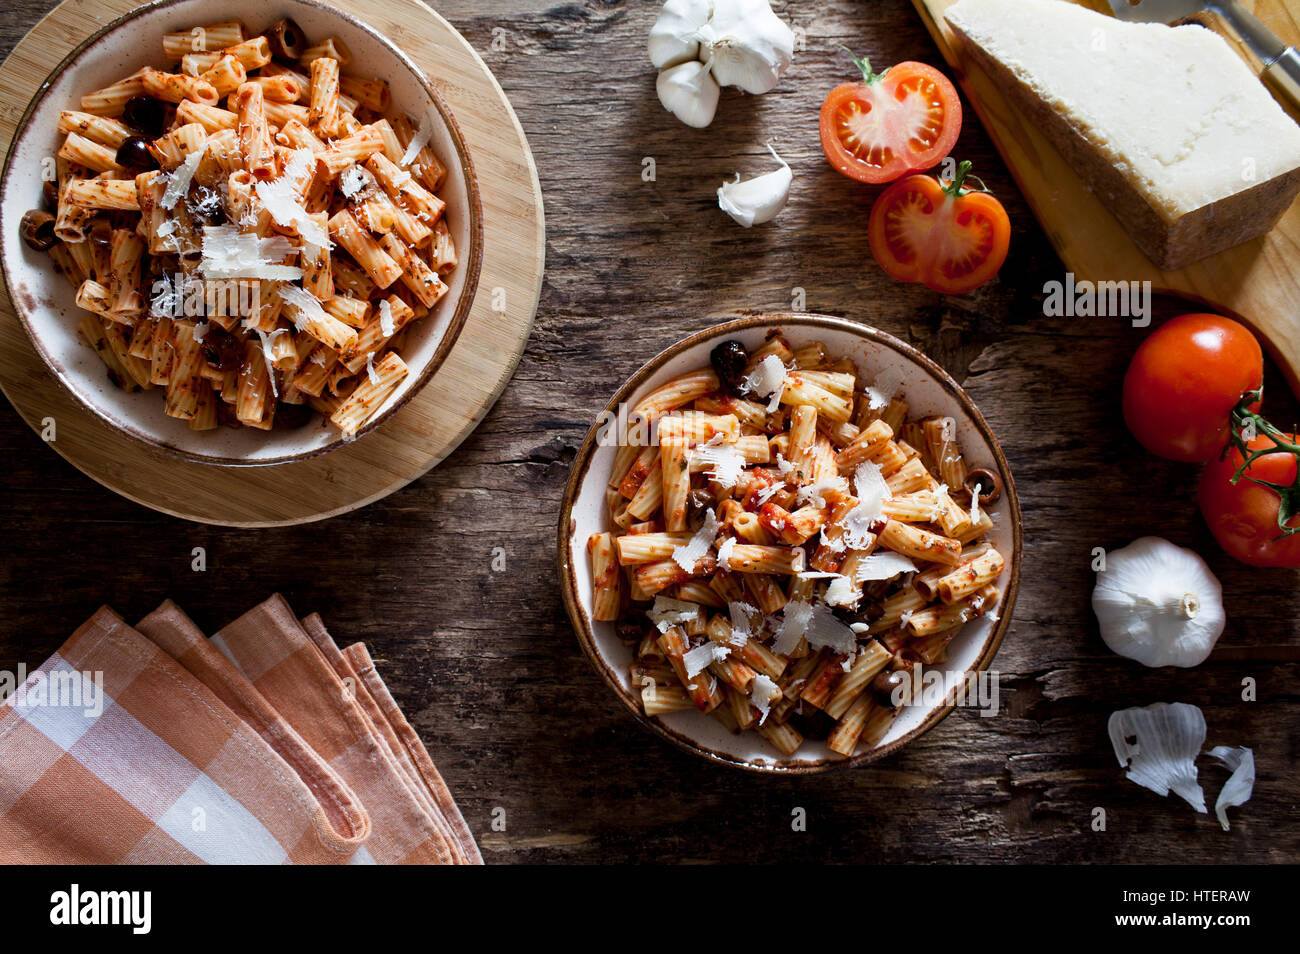 Couple of plates of rigatoni pasta with tomato sauce and olives Stock Photo